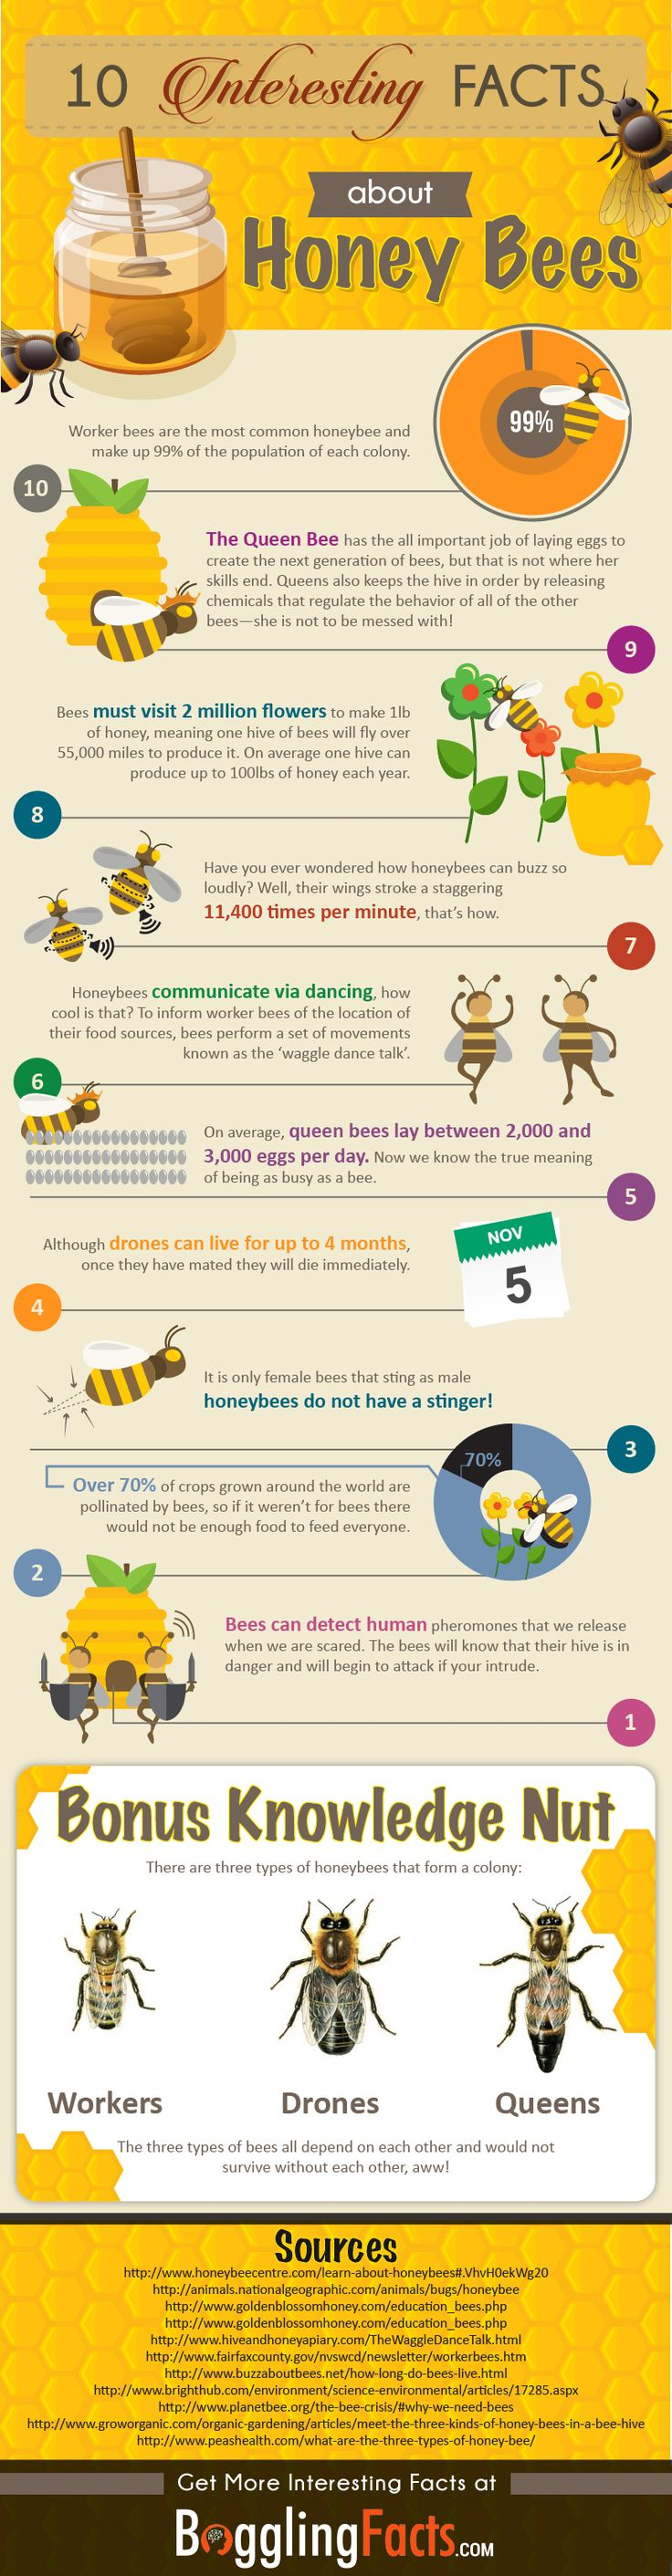 This infographic from BogglingFacts features 10 fascinating Honey Bee facts you didn't know including the hierarchy of a honey bee hive. It details the physical characteristics of the bee, shows the component parts of honey and products that the bees make in the hive and much more. More